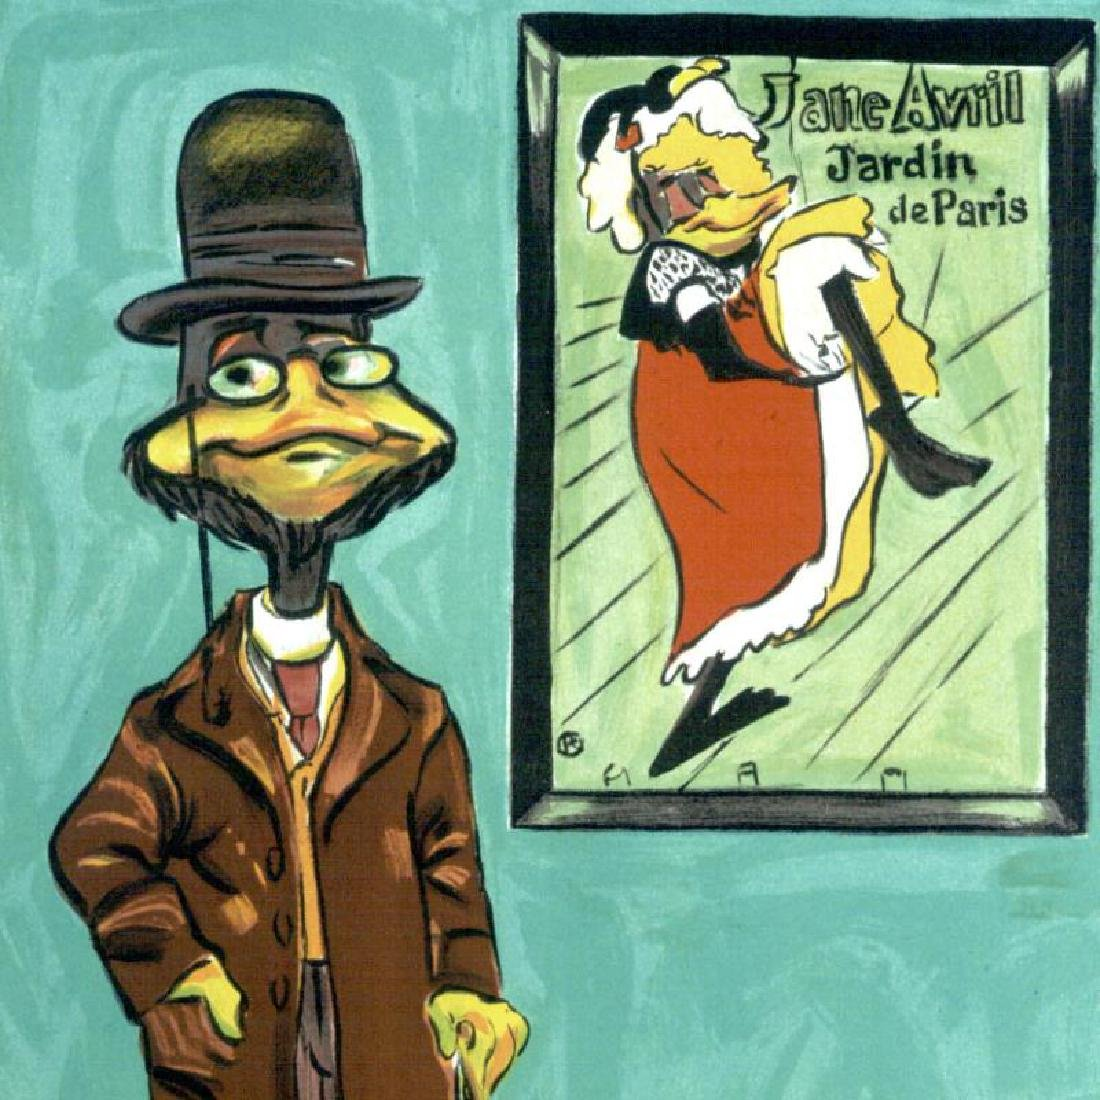 Toulouse Le Duck by Chuck Jones (1912-2002) - 2